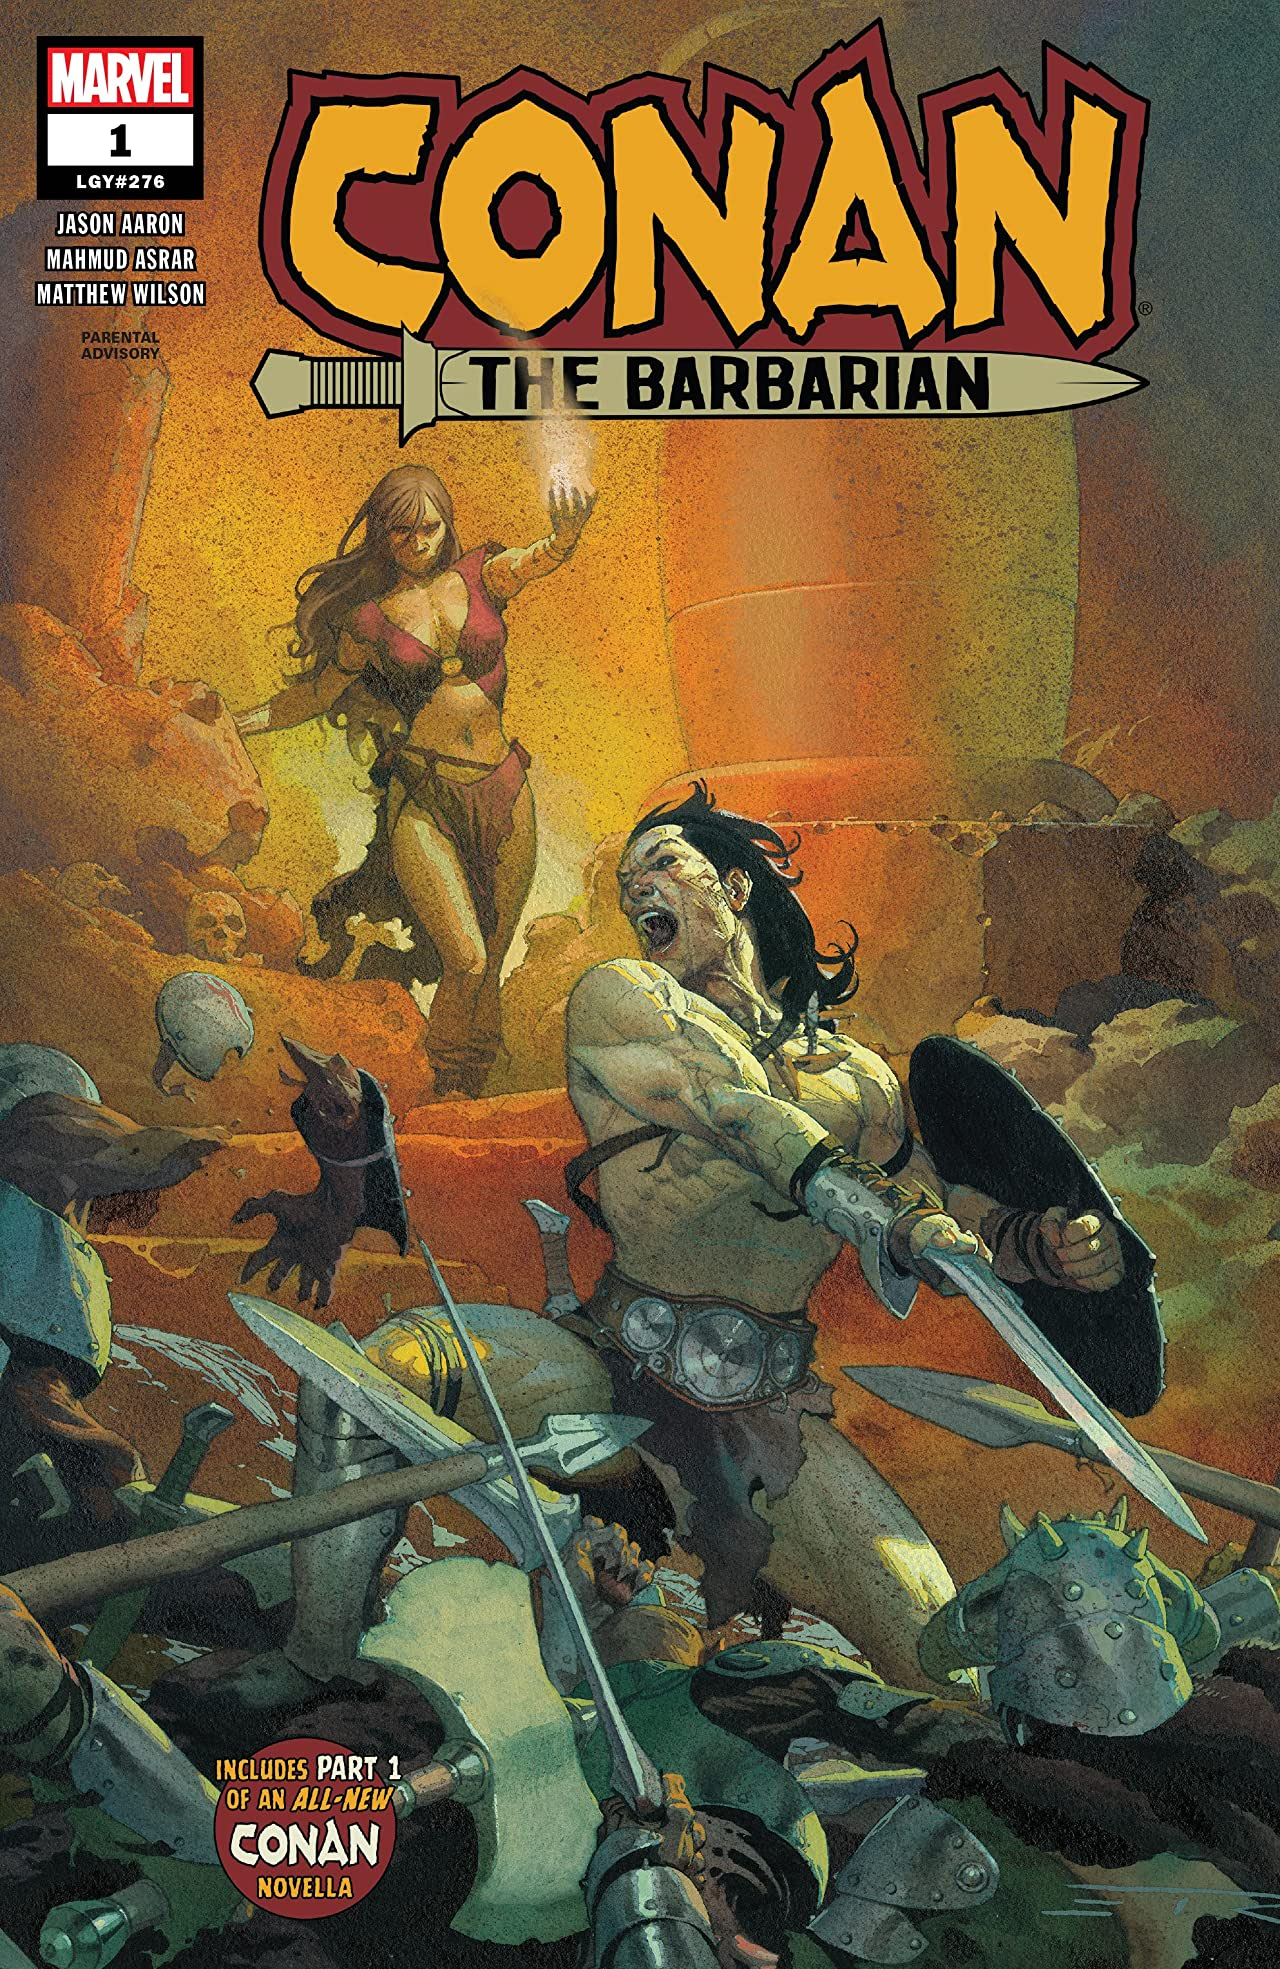 Image result for conan the barbarian comic